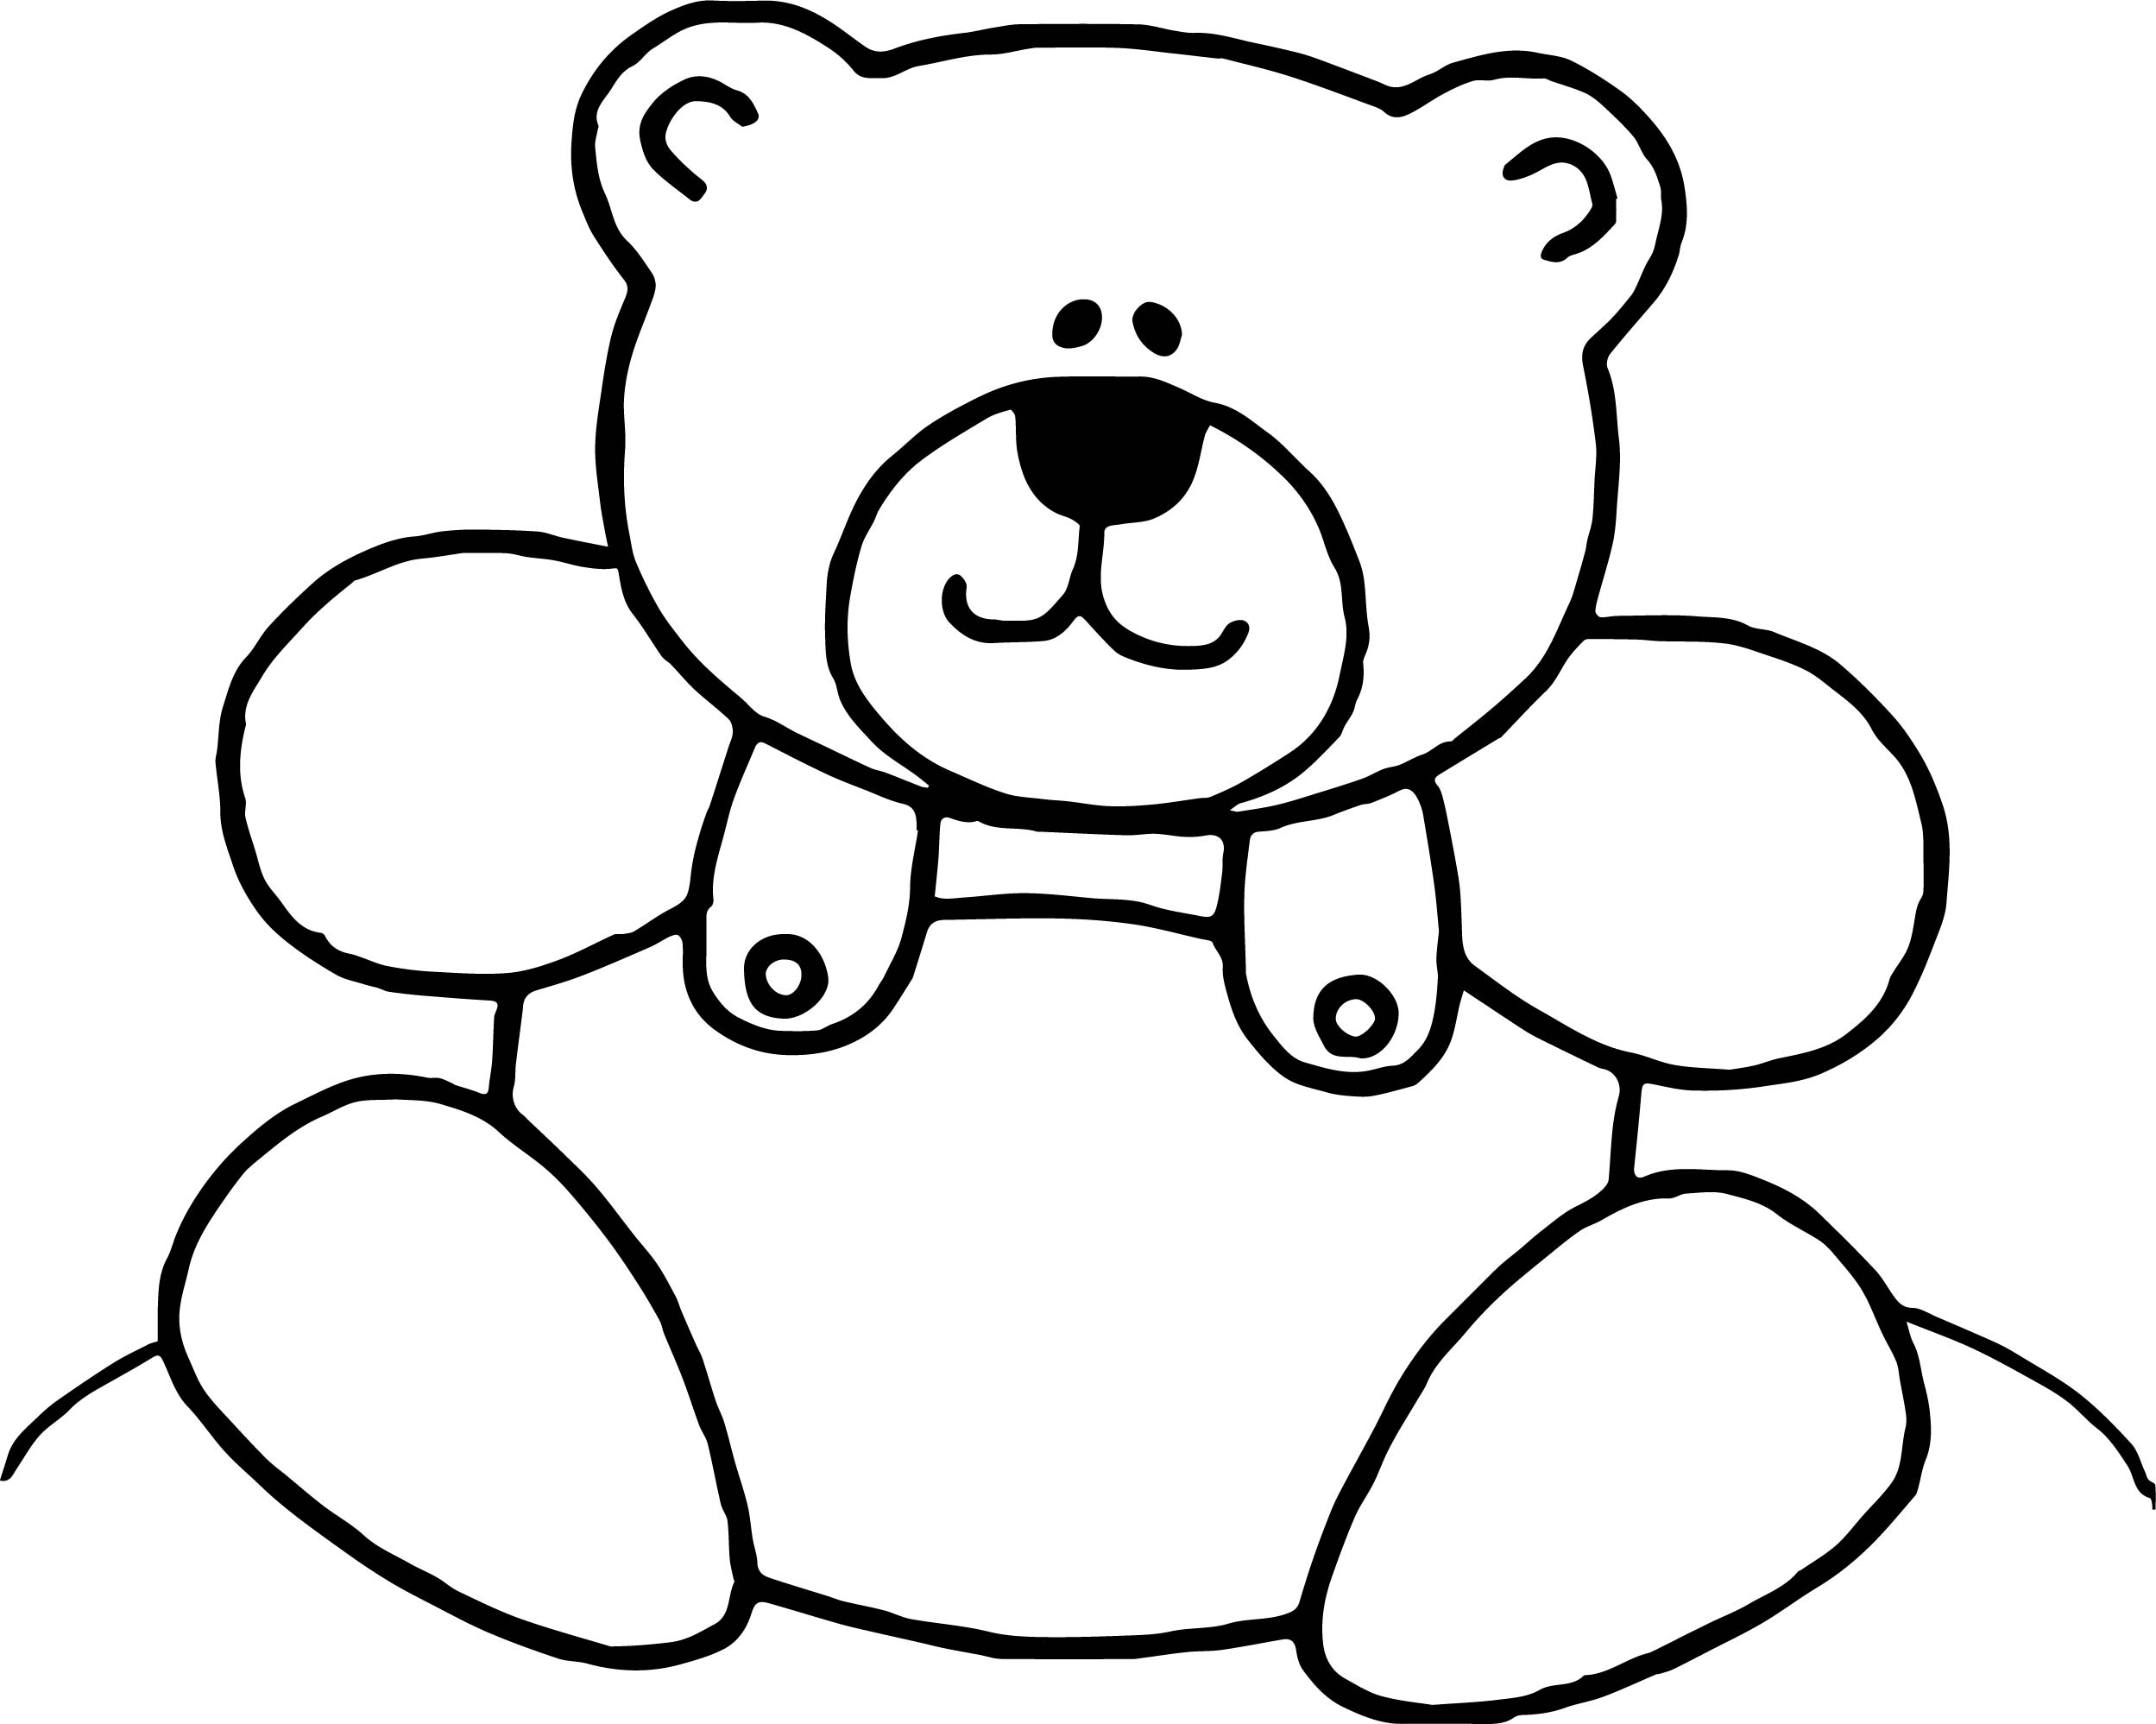 Bear Toy Just Coloring Page